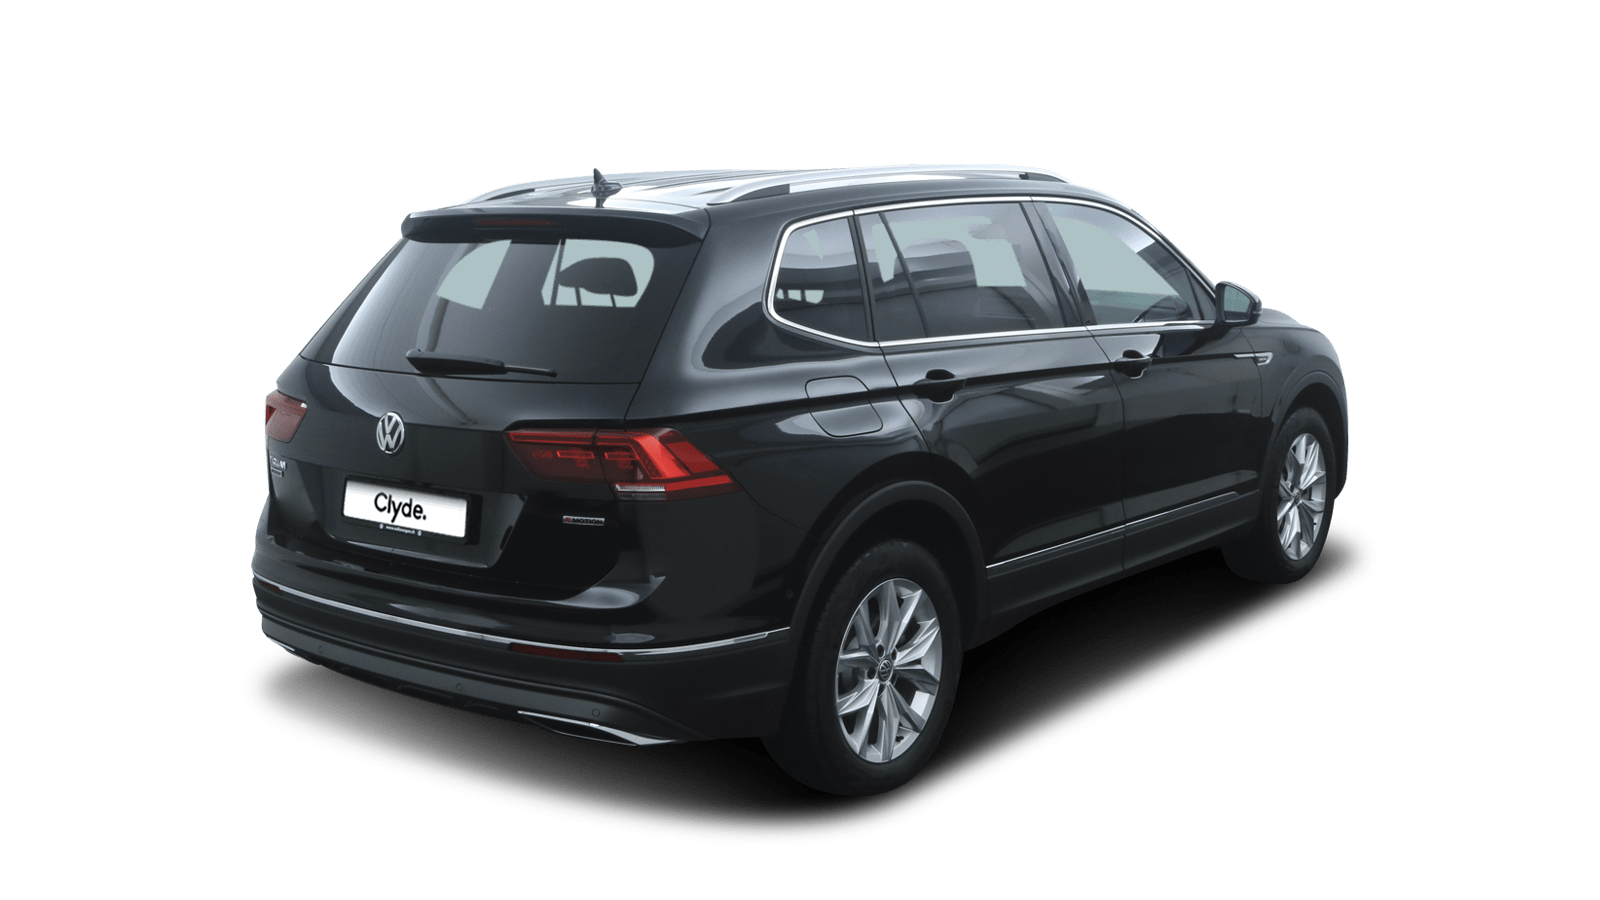 VW Tiguan Allspace Black back - Clyde car subscription